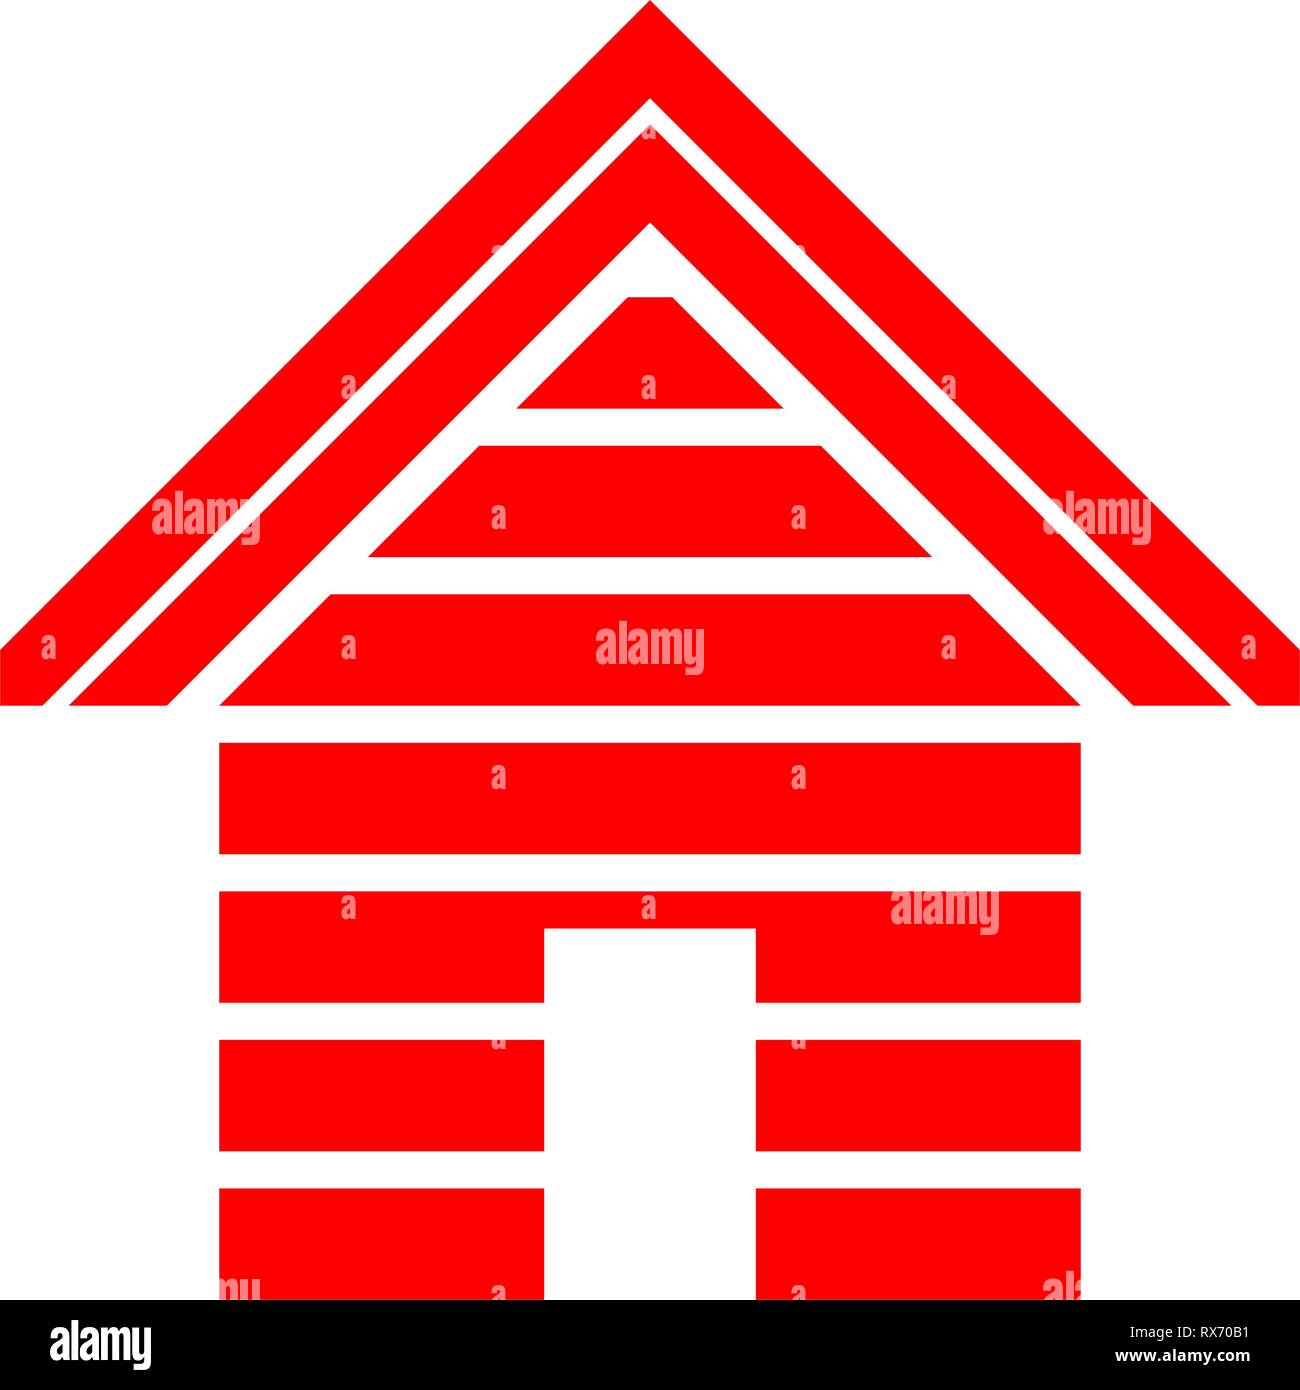 Home symbol icon - red striped, isolated - vector illustration - Stock Vector